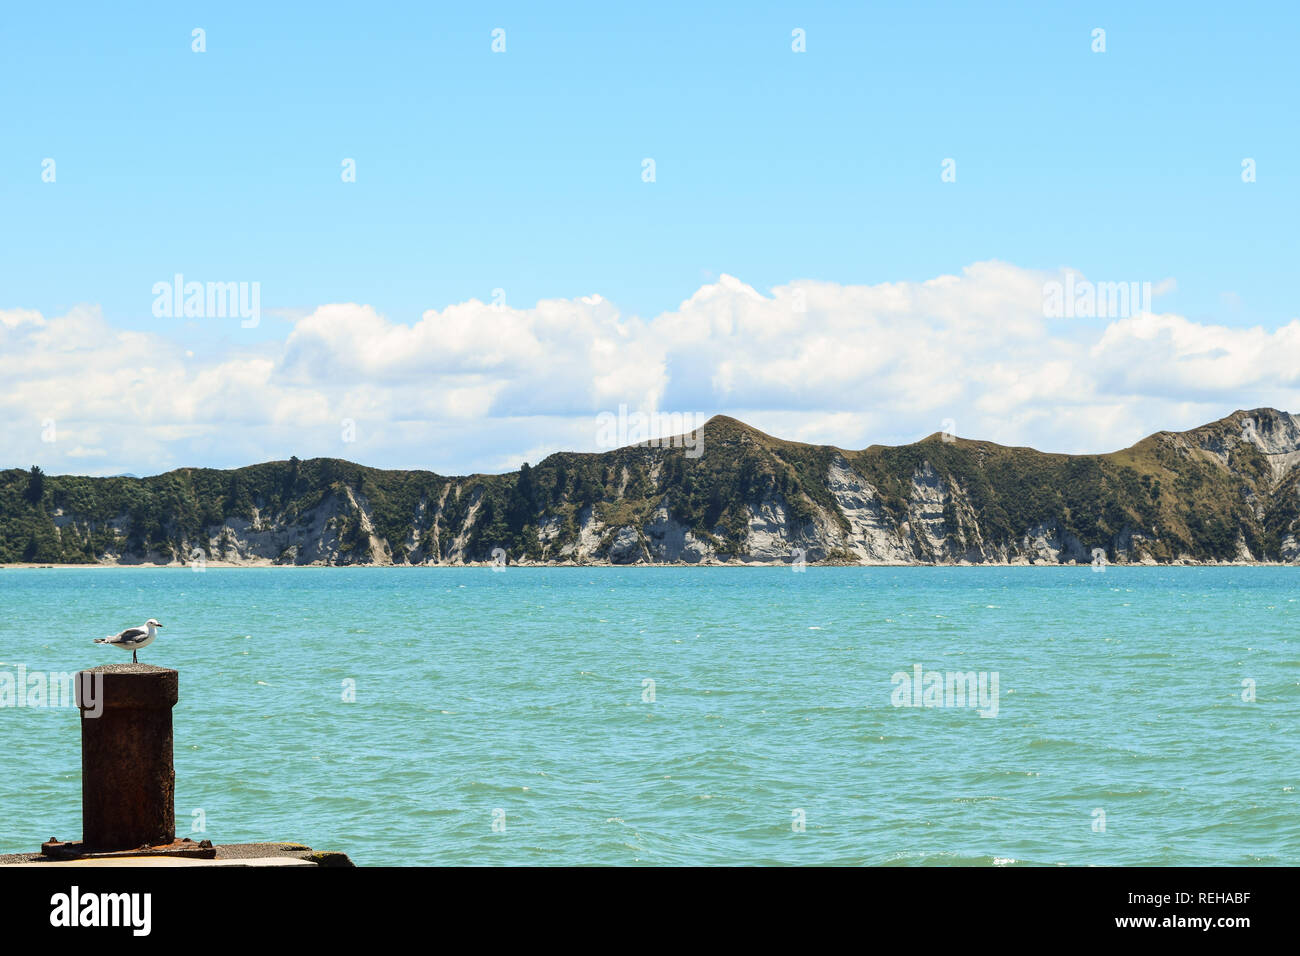 A seagull sits on the post at the end of the long wharf in Tolaga Bay, New Zealand - Stock Image